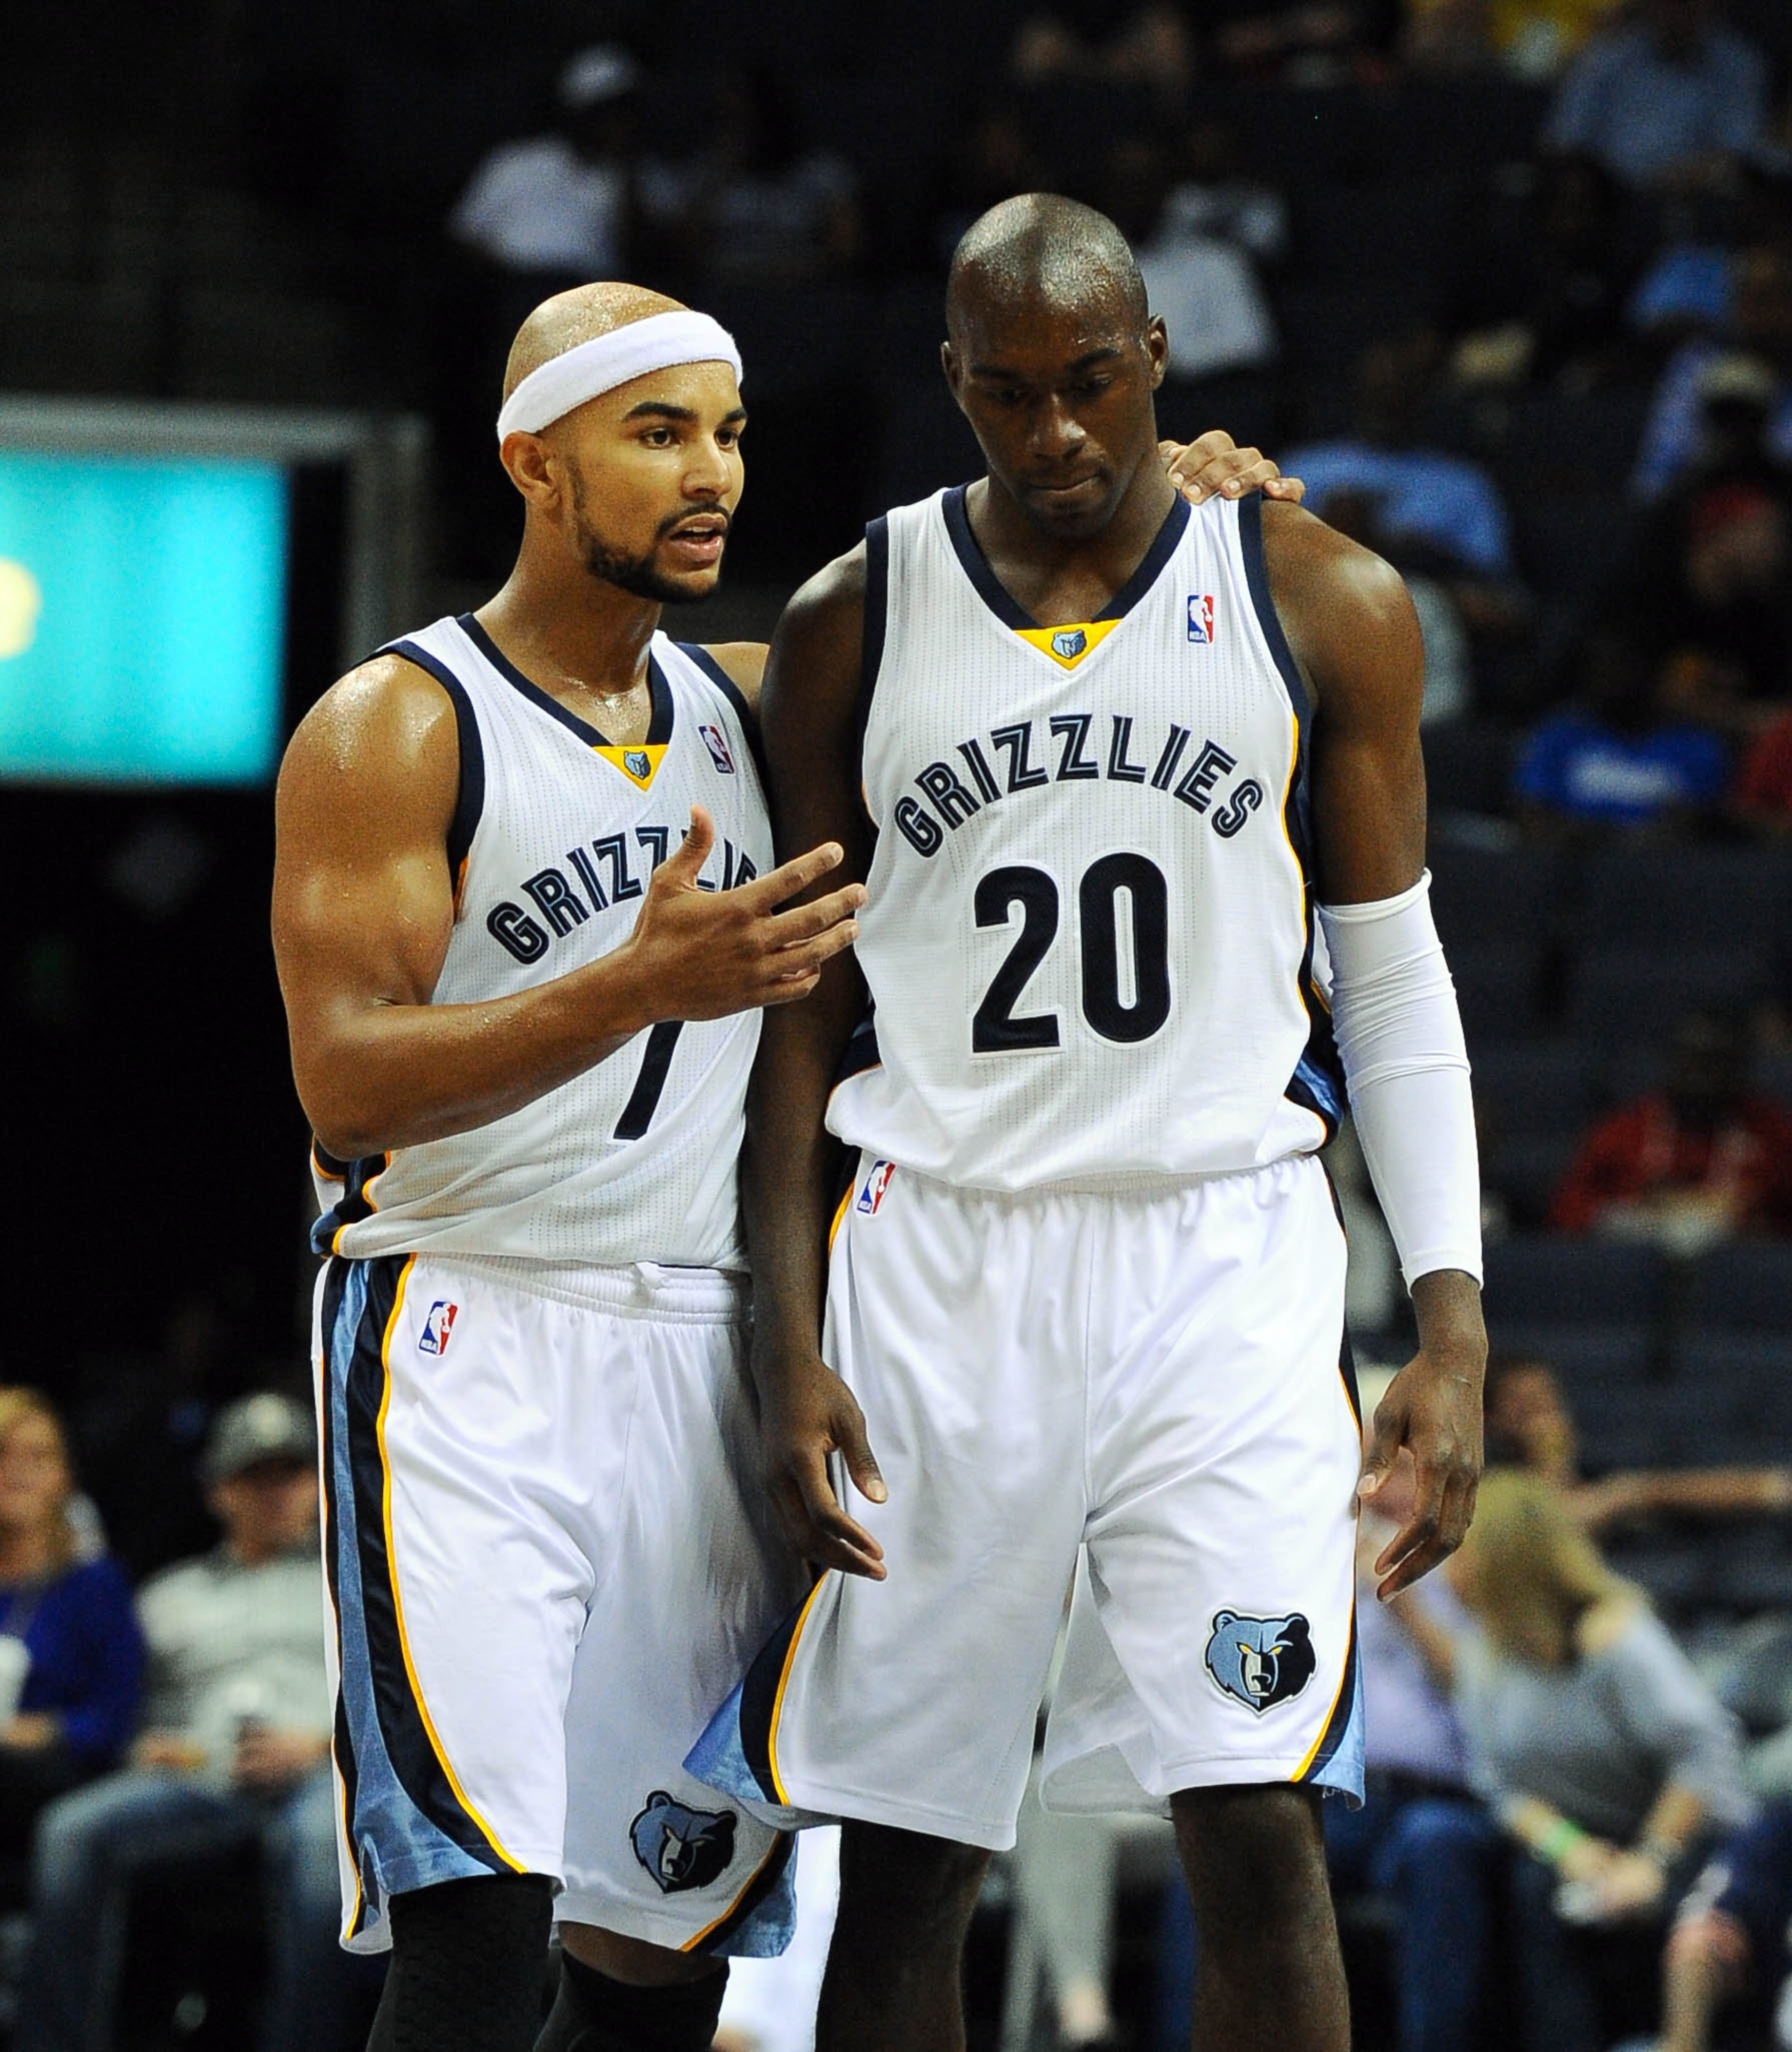 Jerryd Bayless and Quincy Pondexter